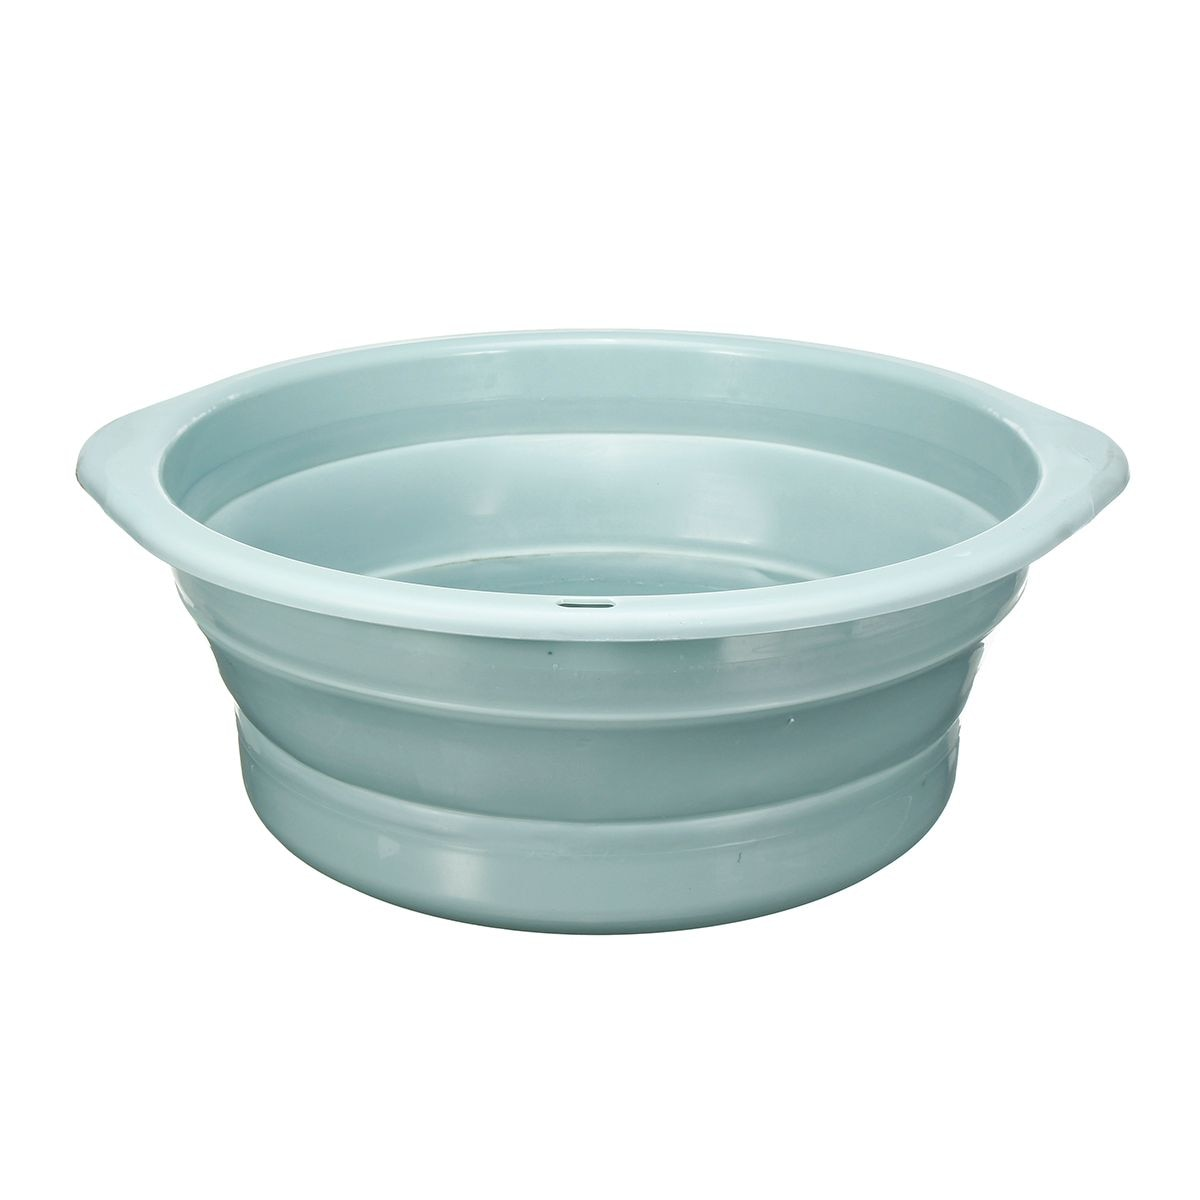 Folding Bucket Portable Collapsible Basins Car Washing Tool Vegetable Fruit Basin High Capacity Household Cleaning Supplies